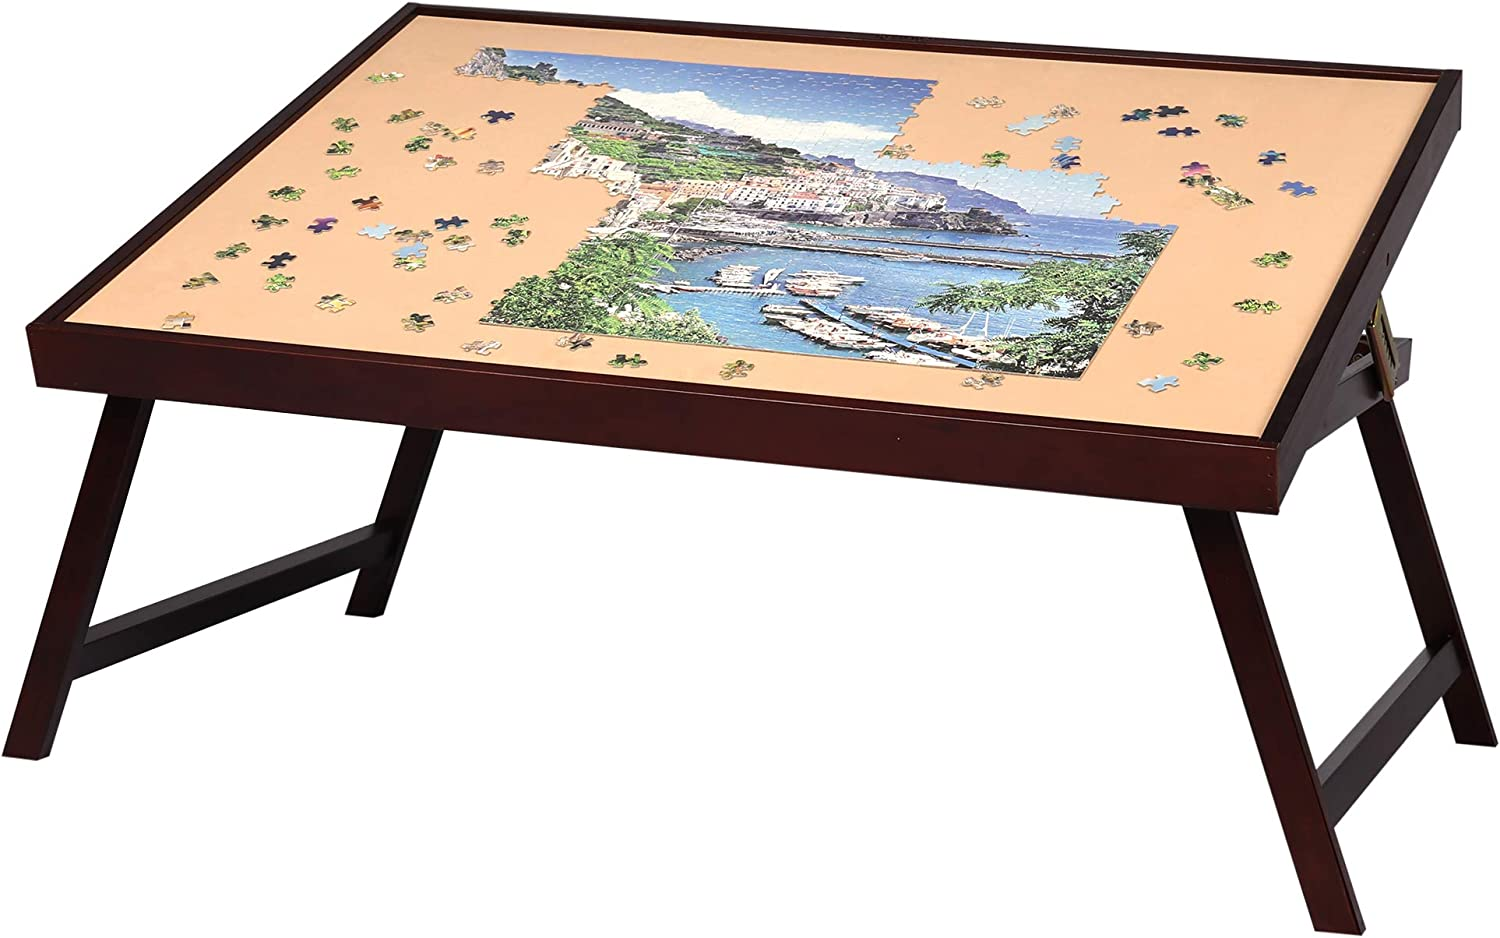 LAVIEVERT Adjustable Wooden Puzzle Board Easel Jigsaw Puzzle Plateau Non-Slip Up